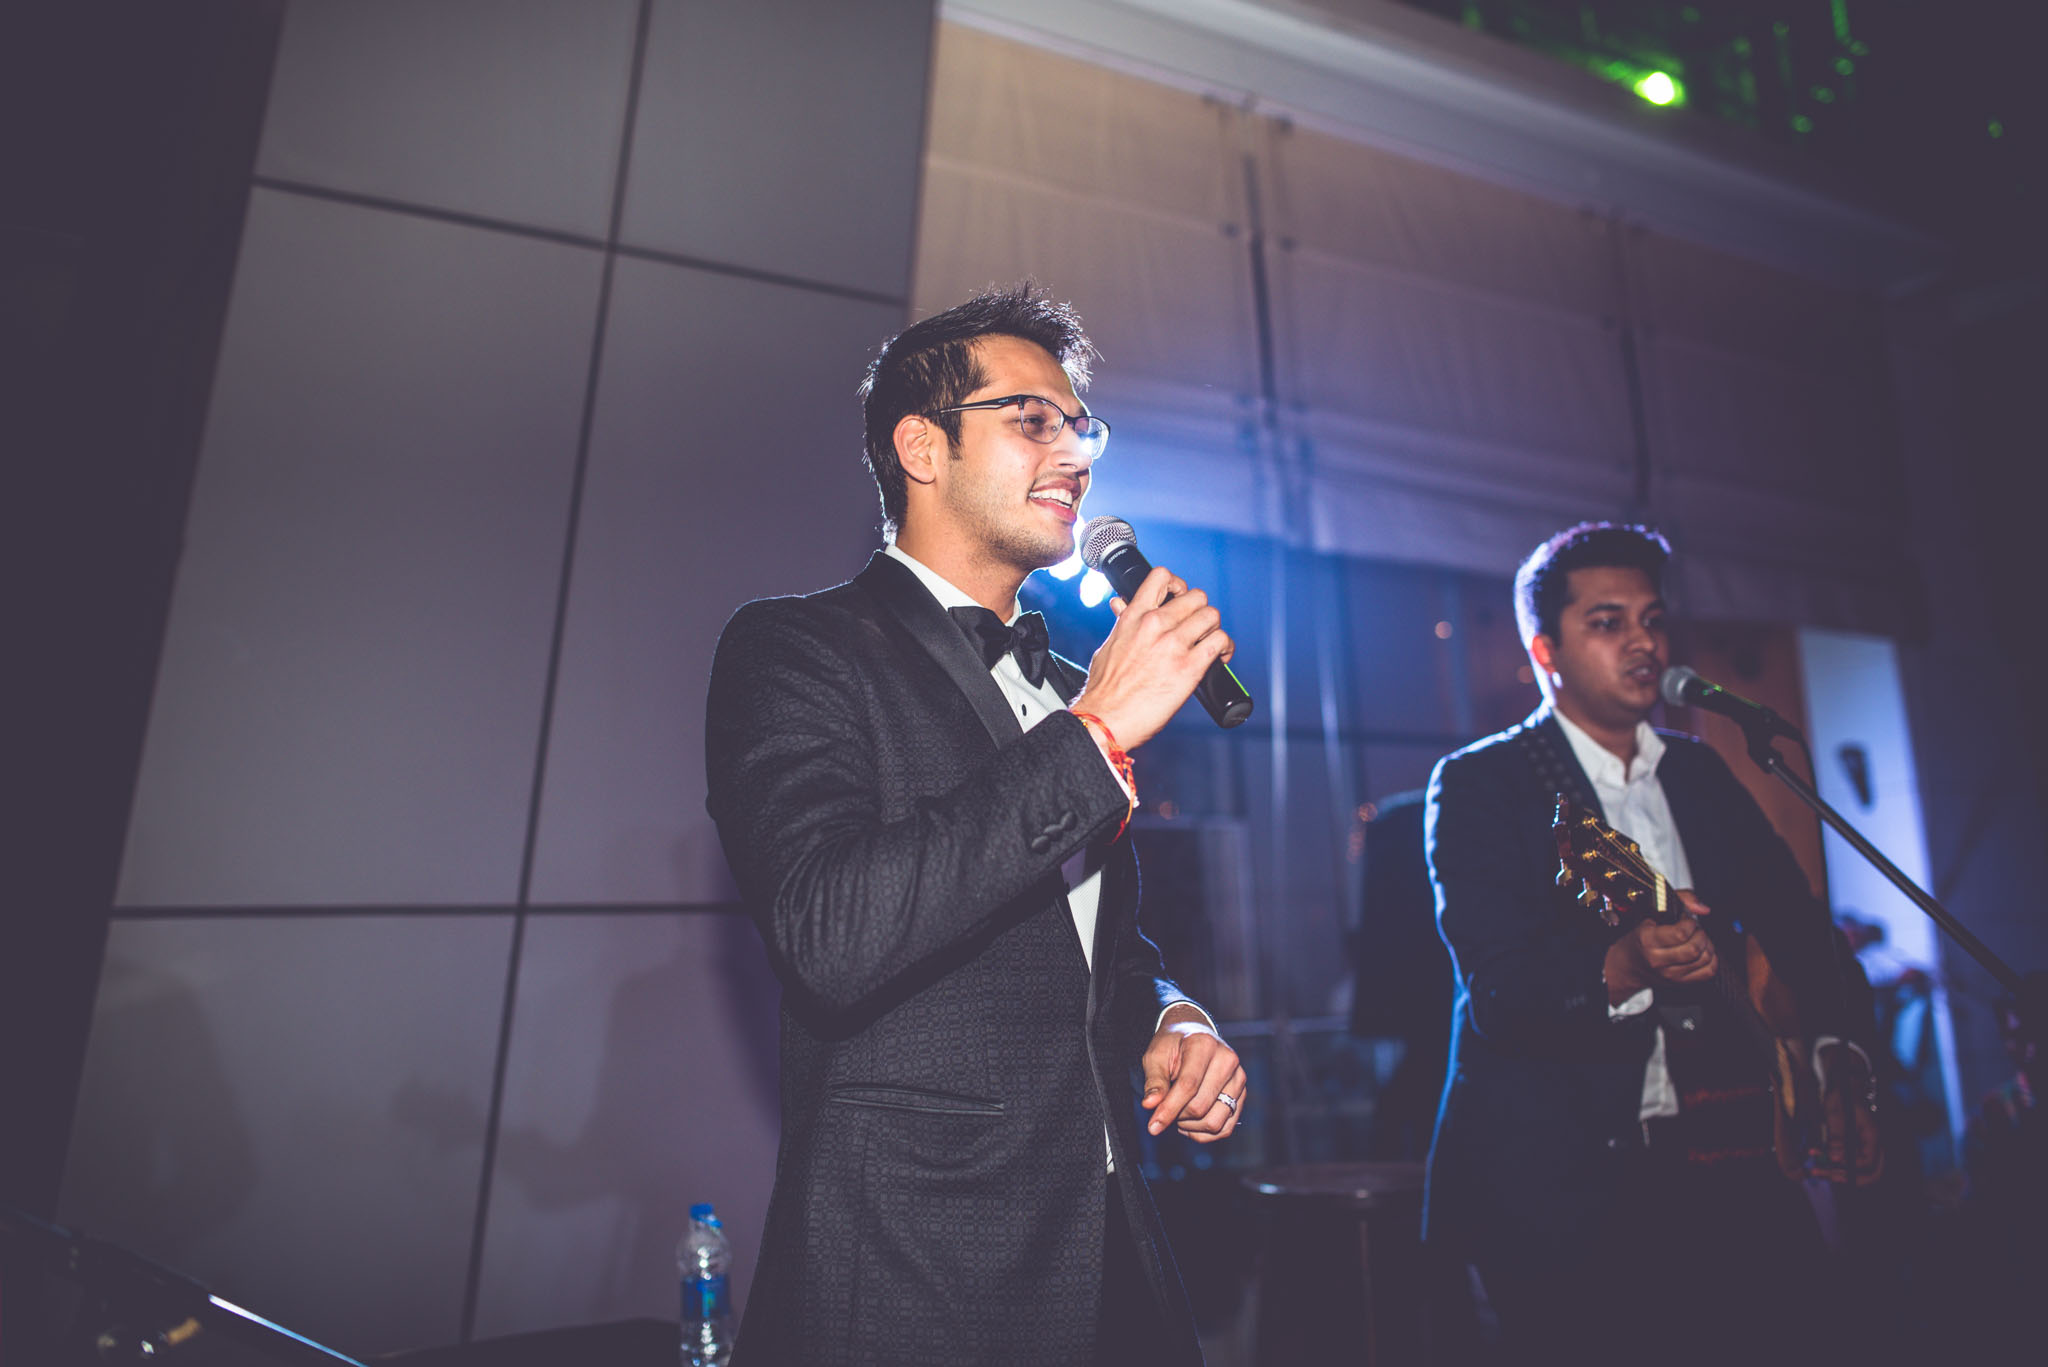 StRegis-Palladium-Mumbai-Candid-Wedding-Photography-9